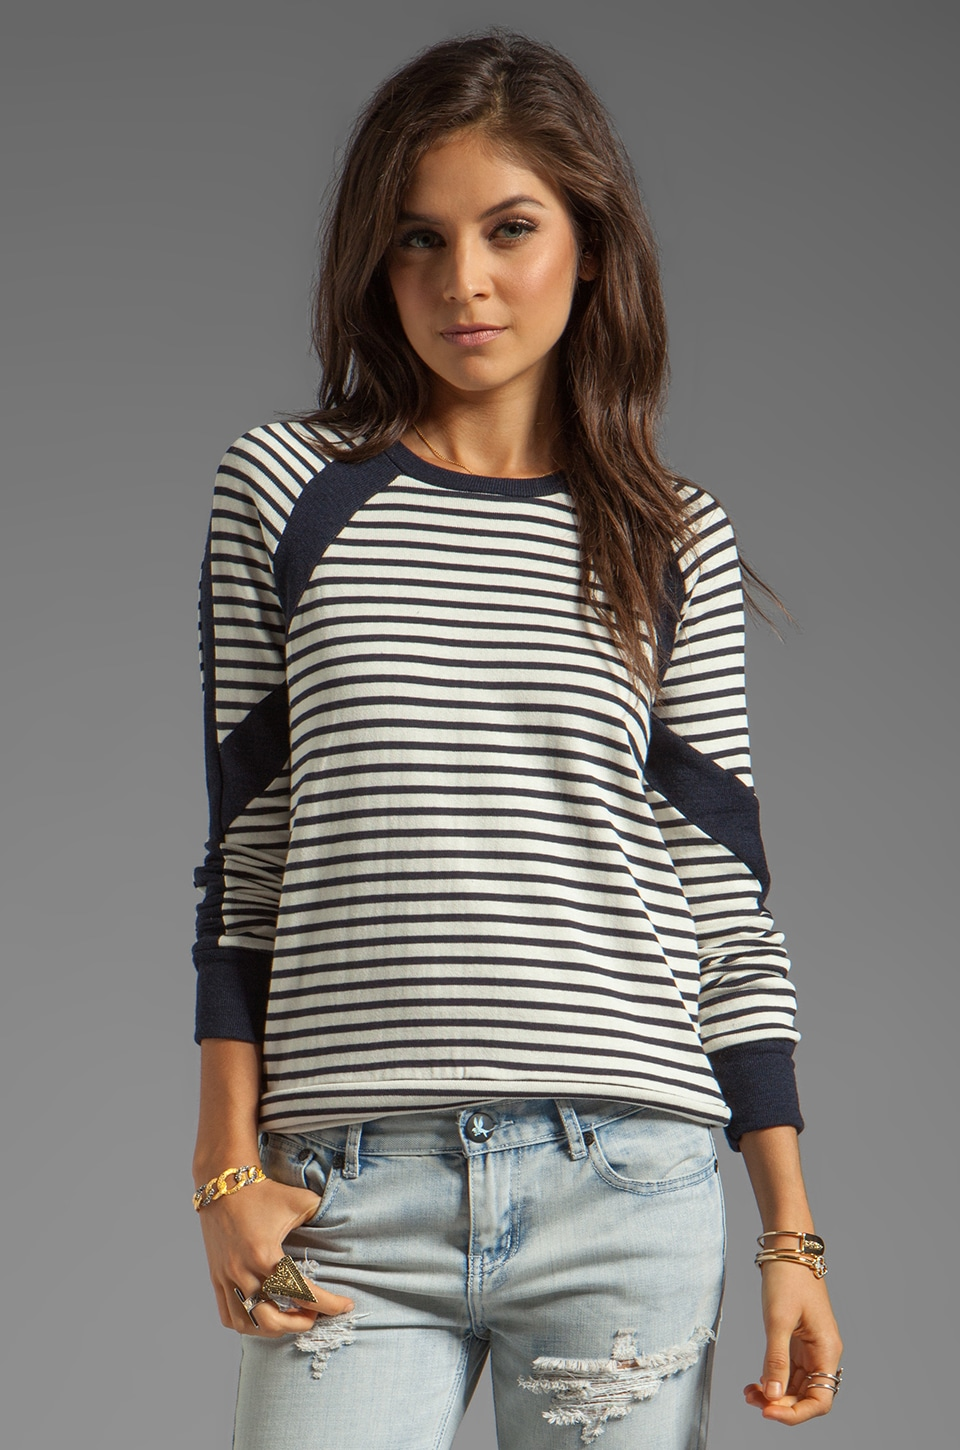 19 4t Crew Skinny Panel Pullover in Cream/Navy Stripe